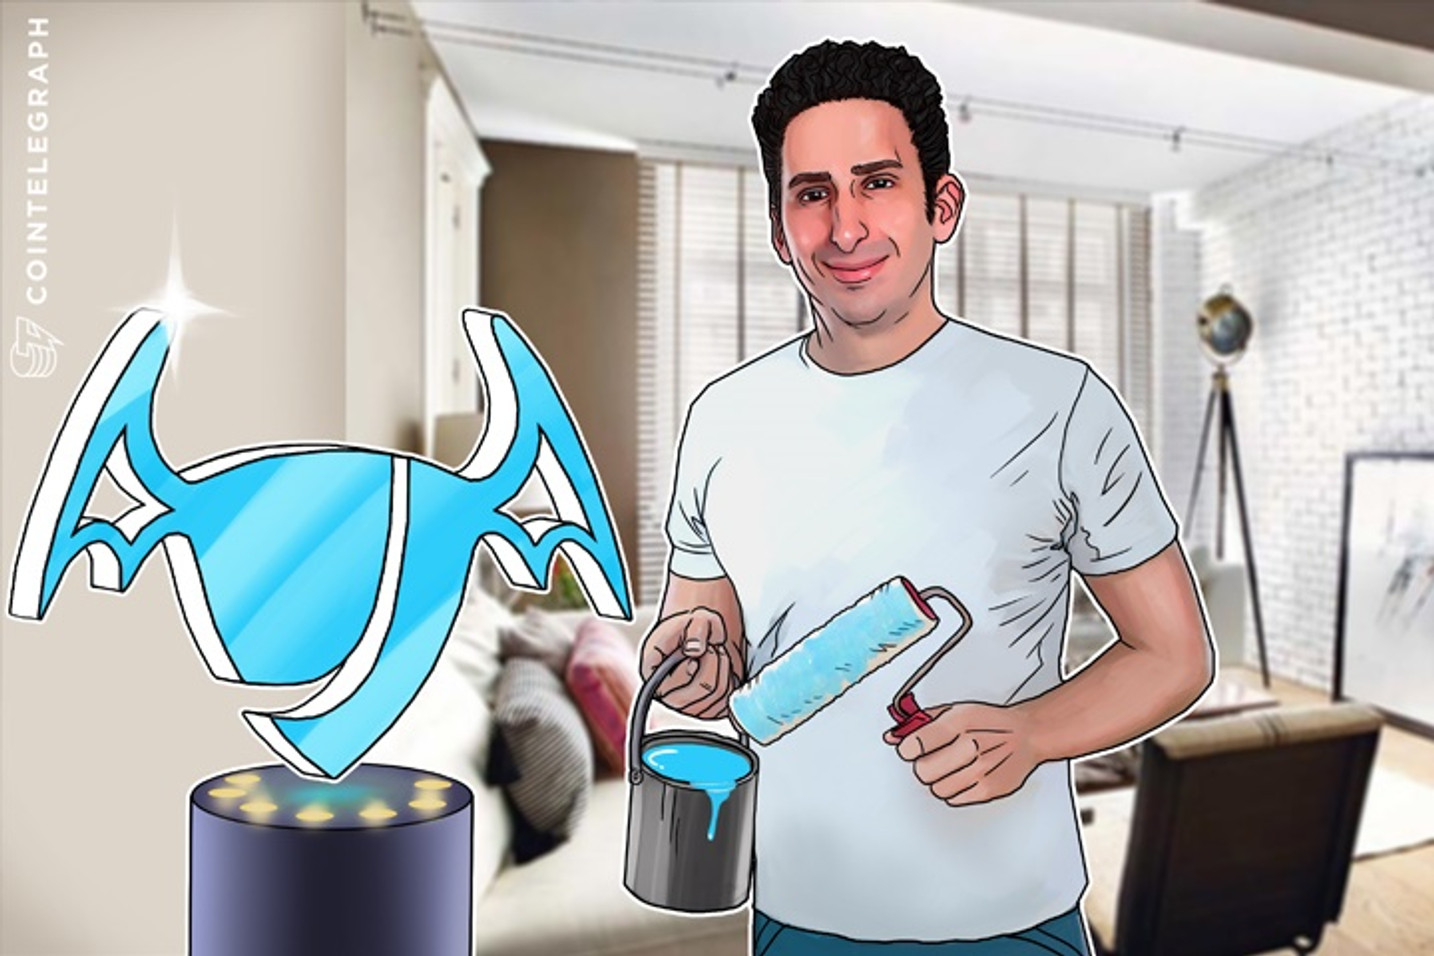 Draglet Expands its Services to Blockchain Applications, Changes Pricing Model